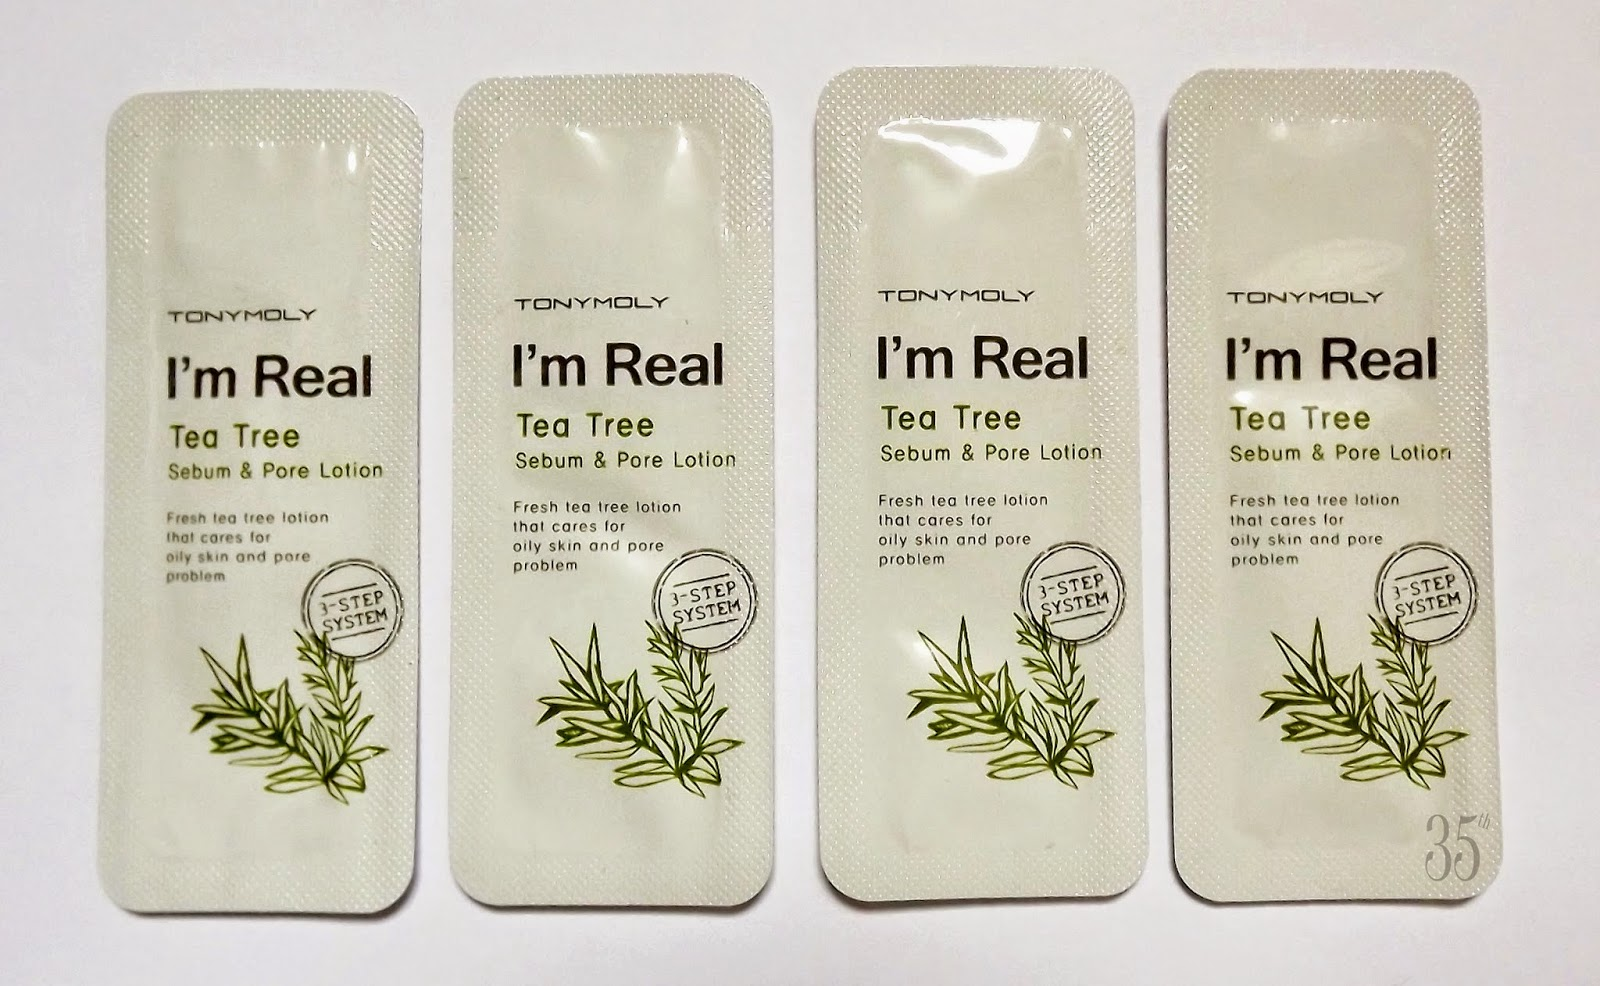 Tonymoly I'm Real Tea Tree Sebum Pore Lotion review